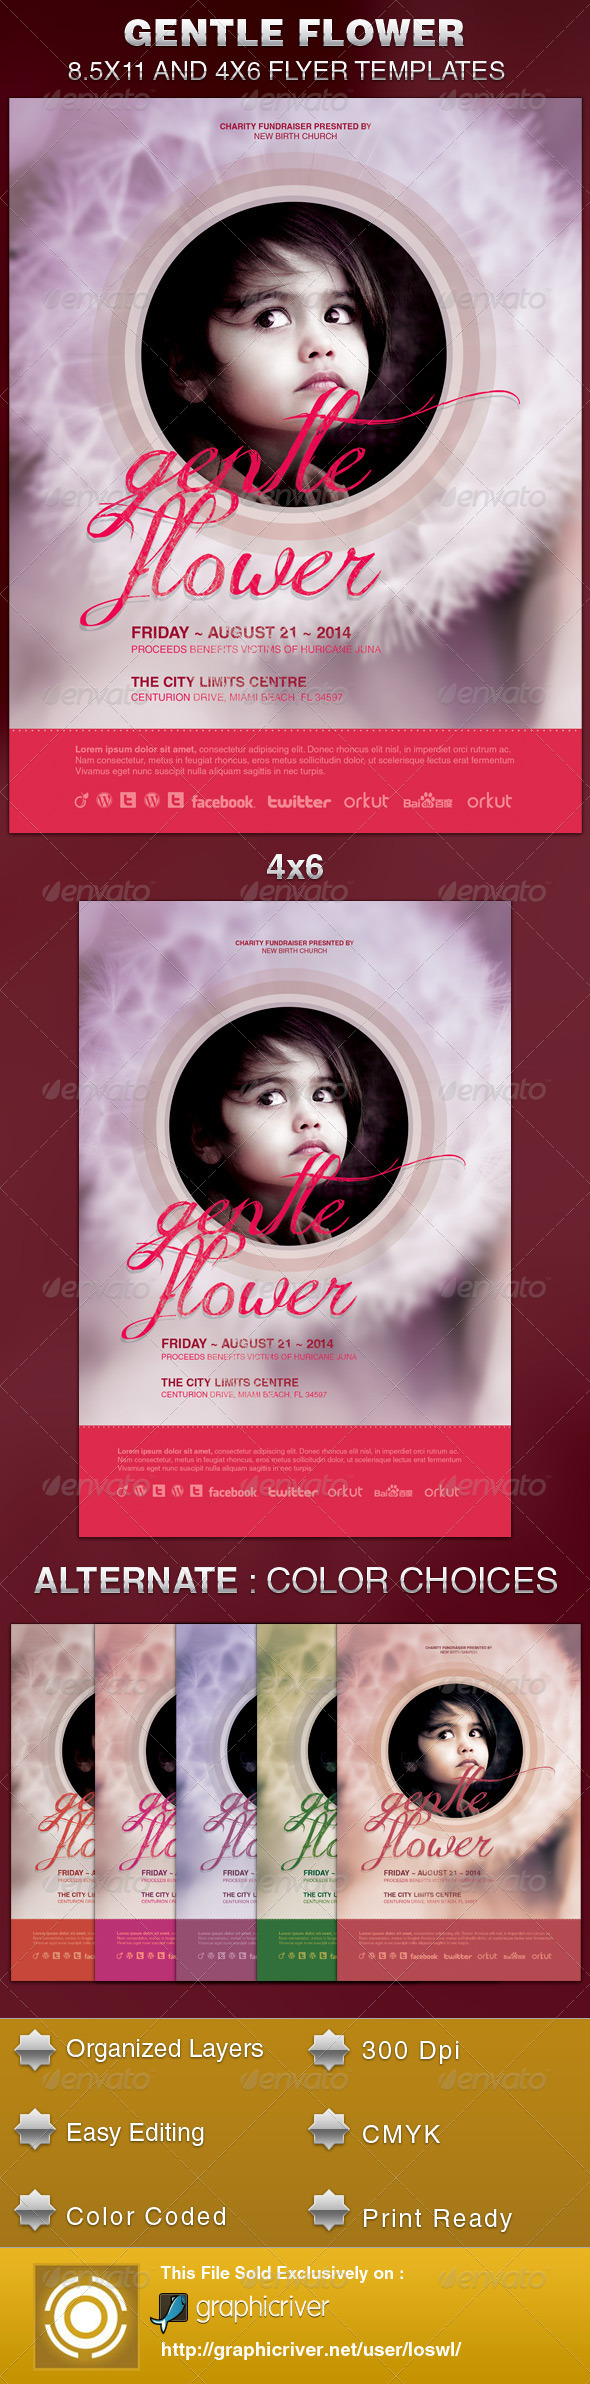 Gentle Flower Church Flyer Template - Church Flyers